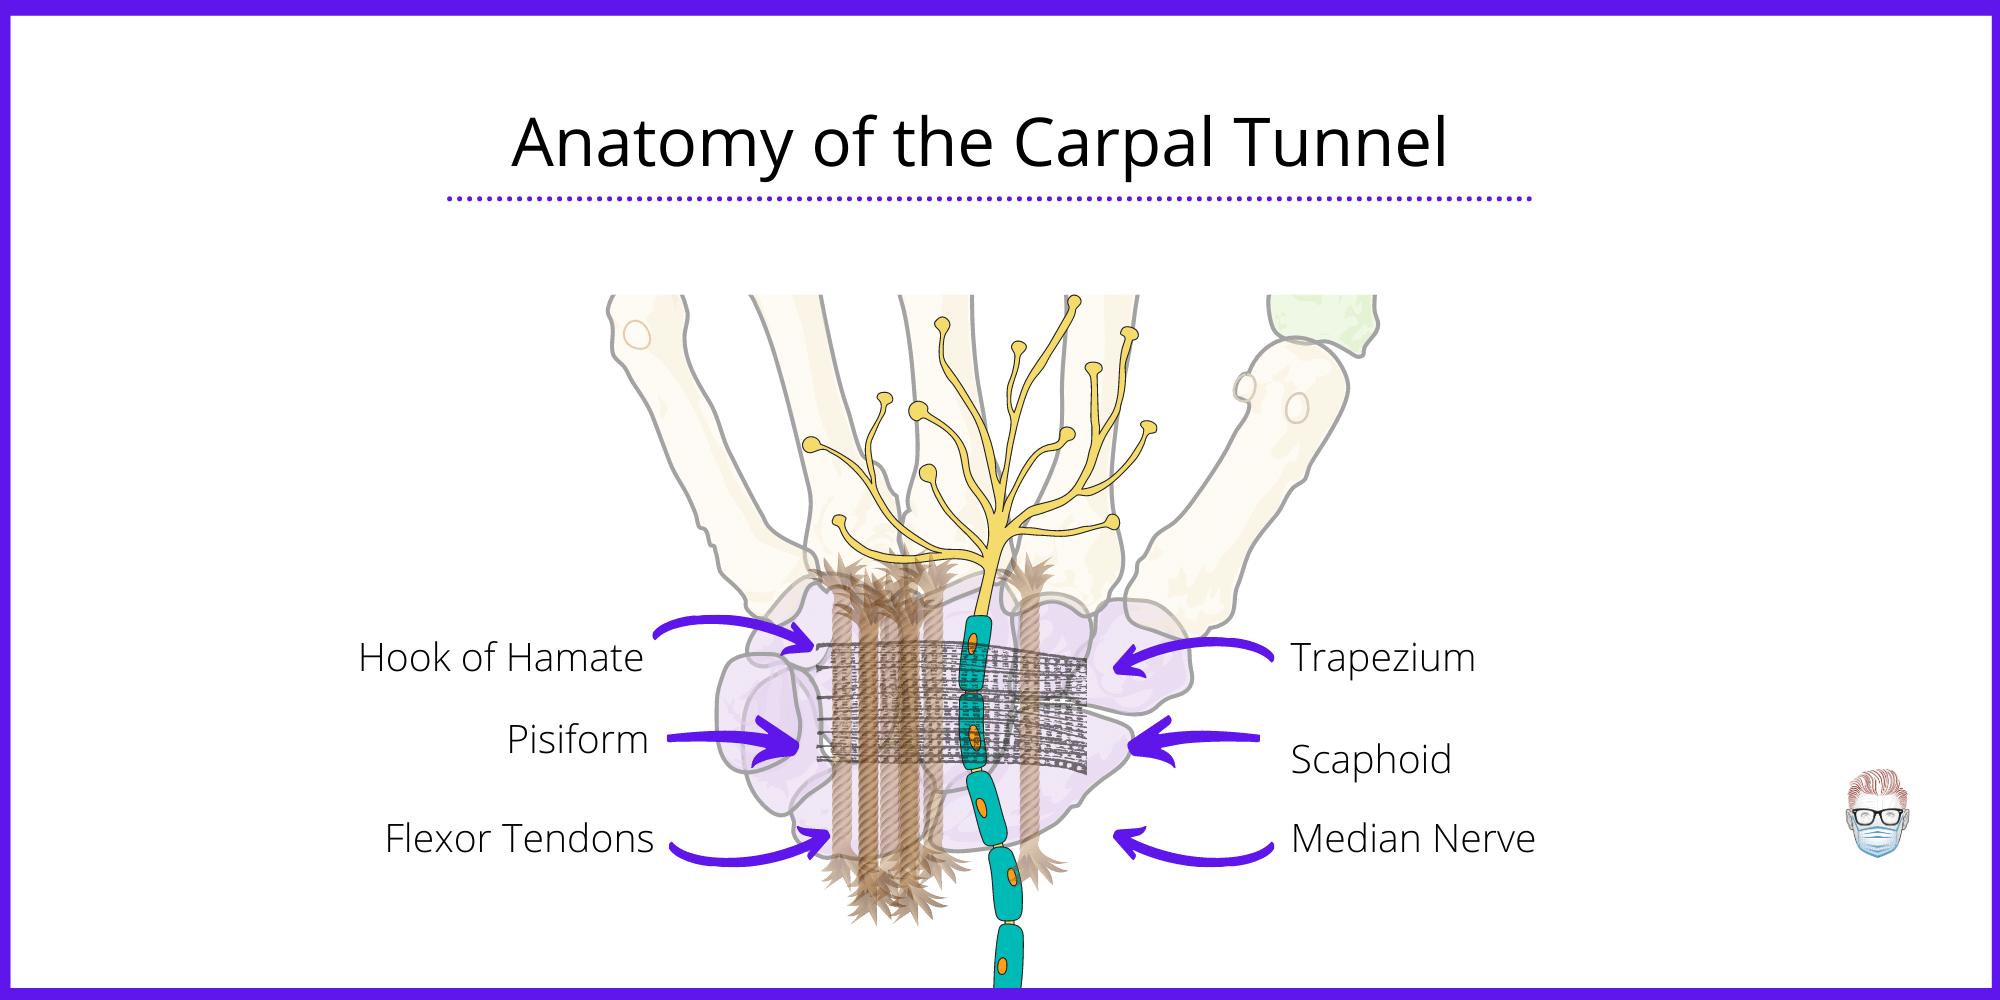 Anatomy of the Carpal Tunnel in relation to median nerve and 9 flexor tendons travelling though an osseous-fibrous structure in the wrist